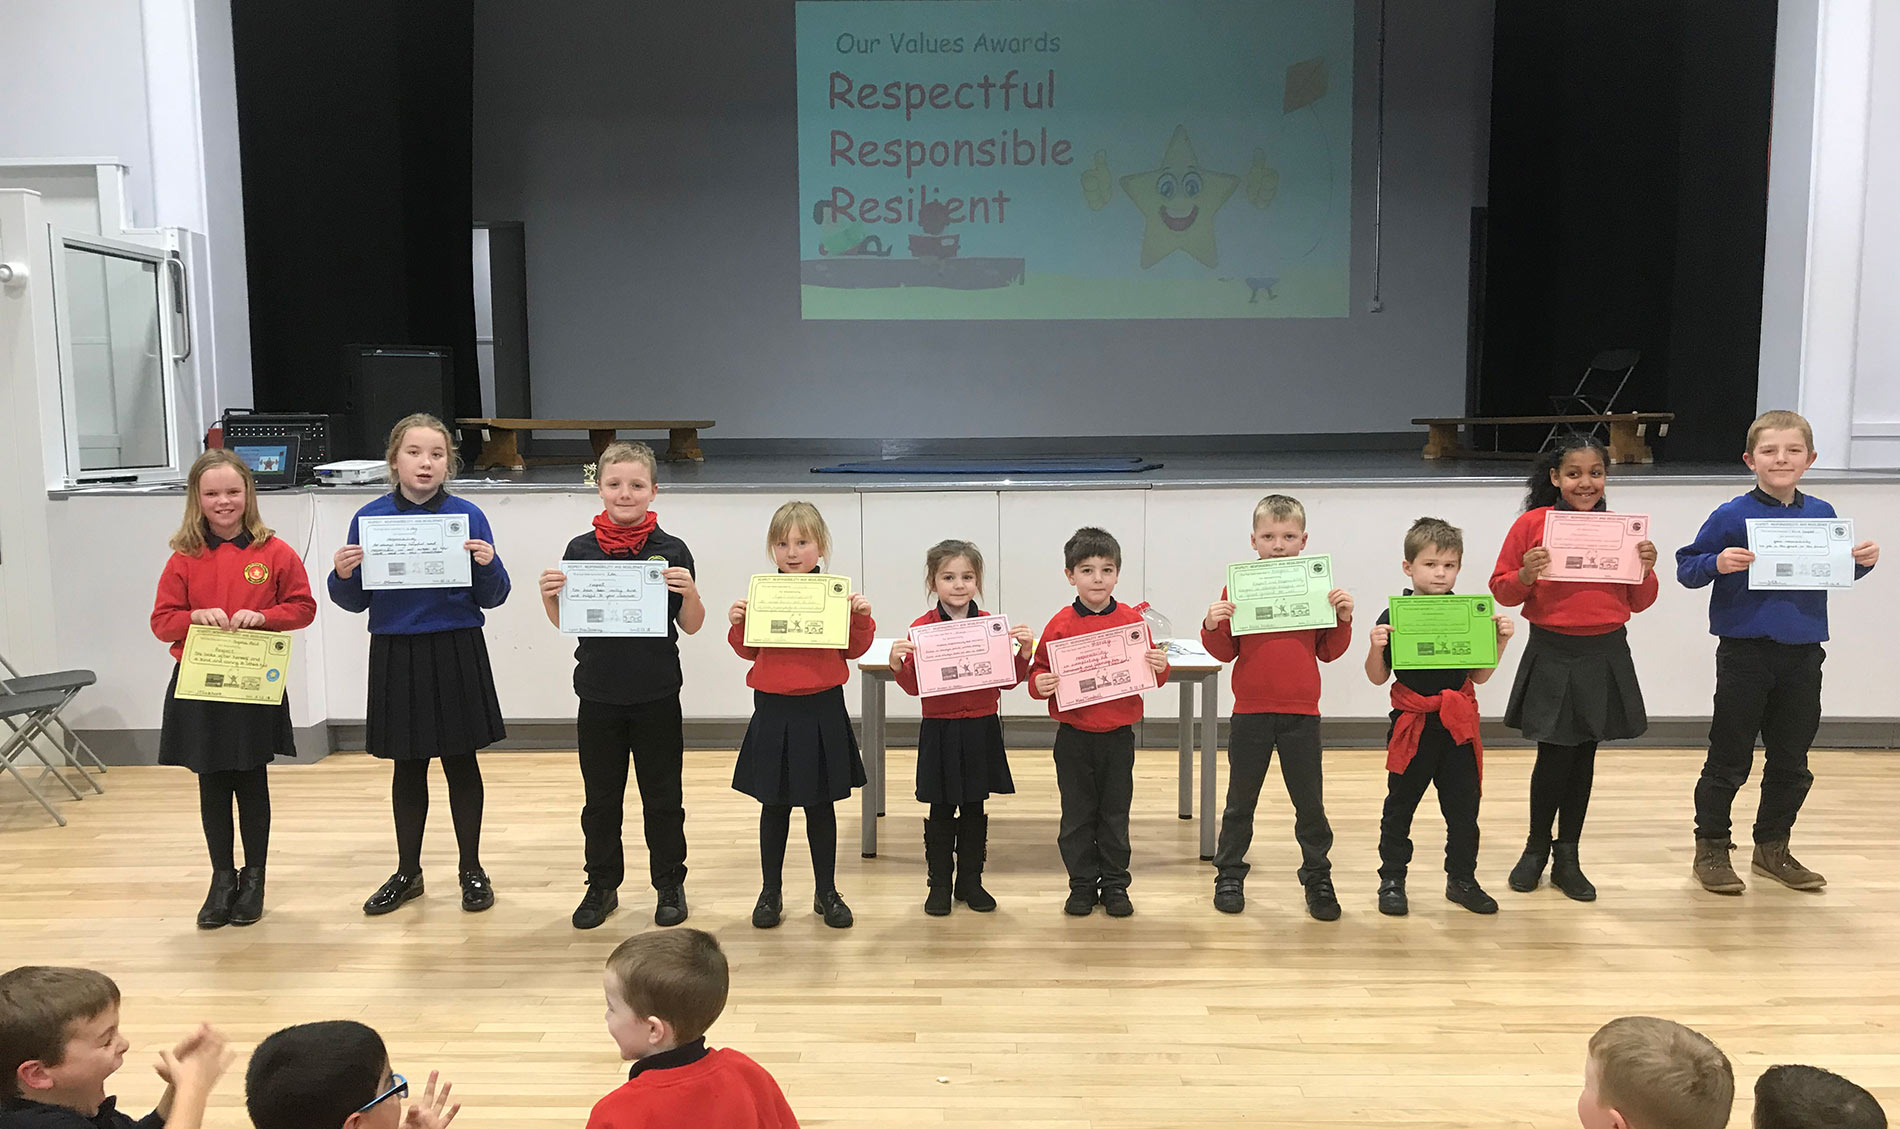 Award winners at Duns primary school